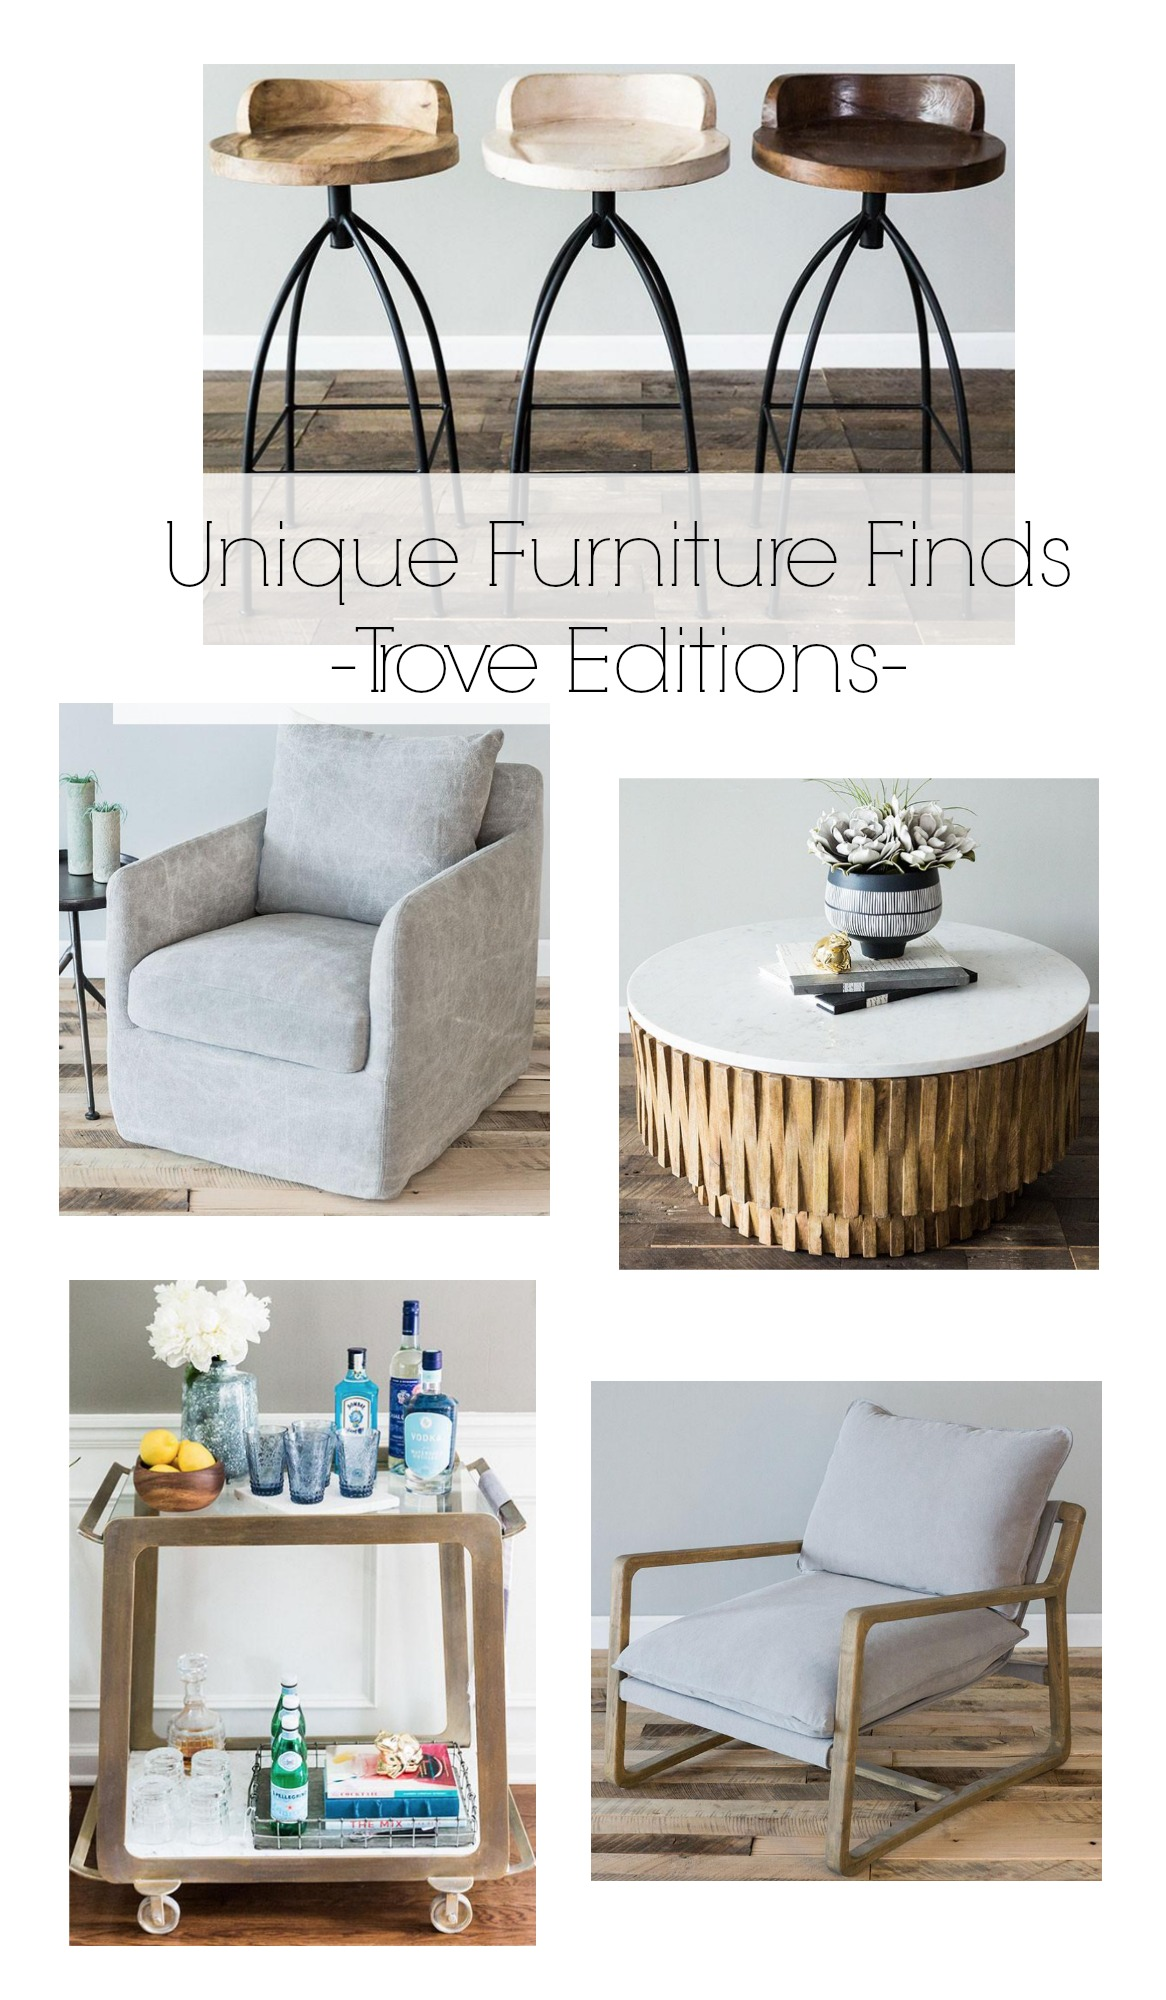 Where to Find Unique One of a Kind Furniture- Trove Editions